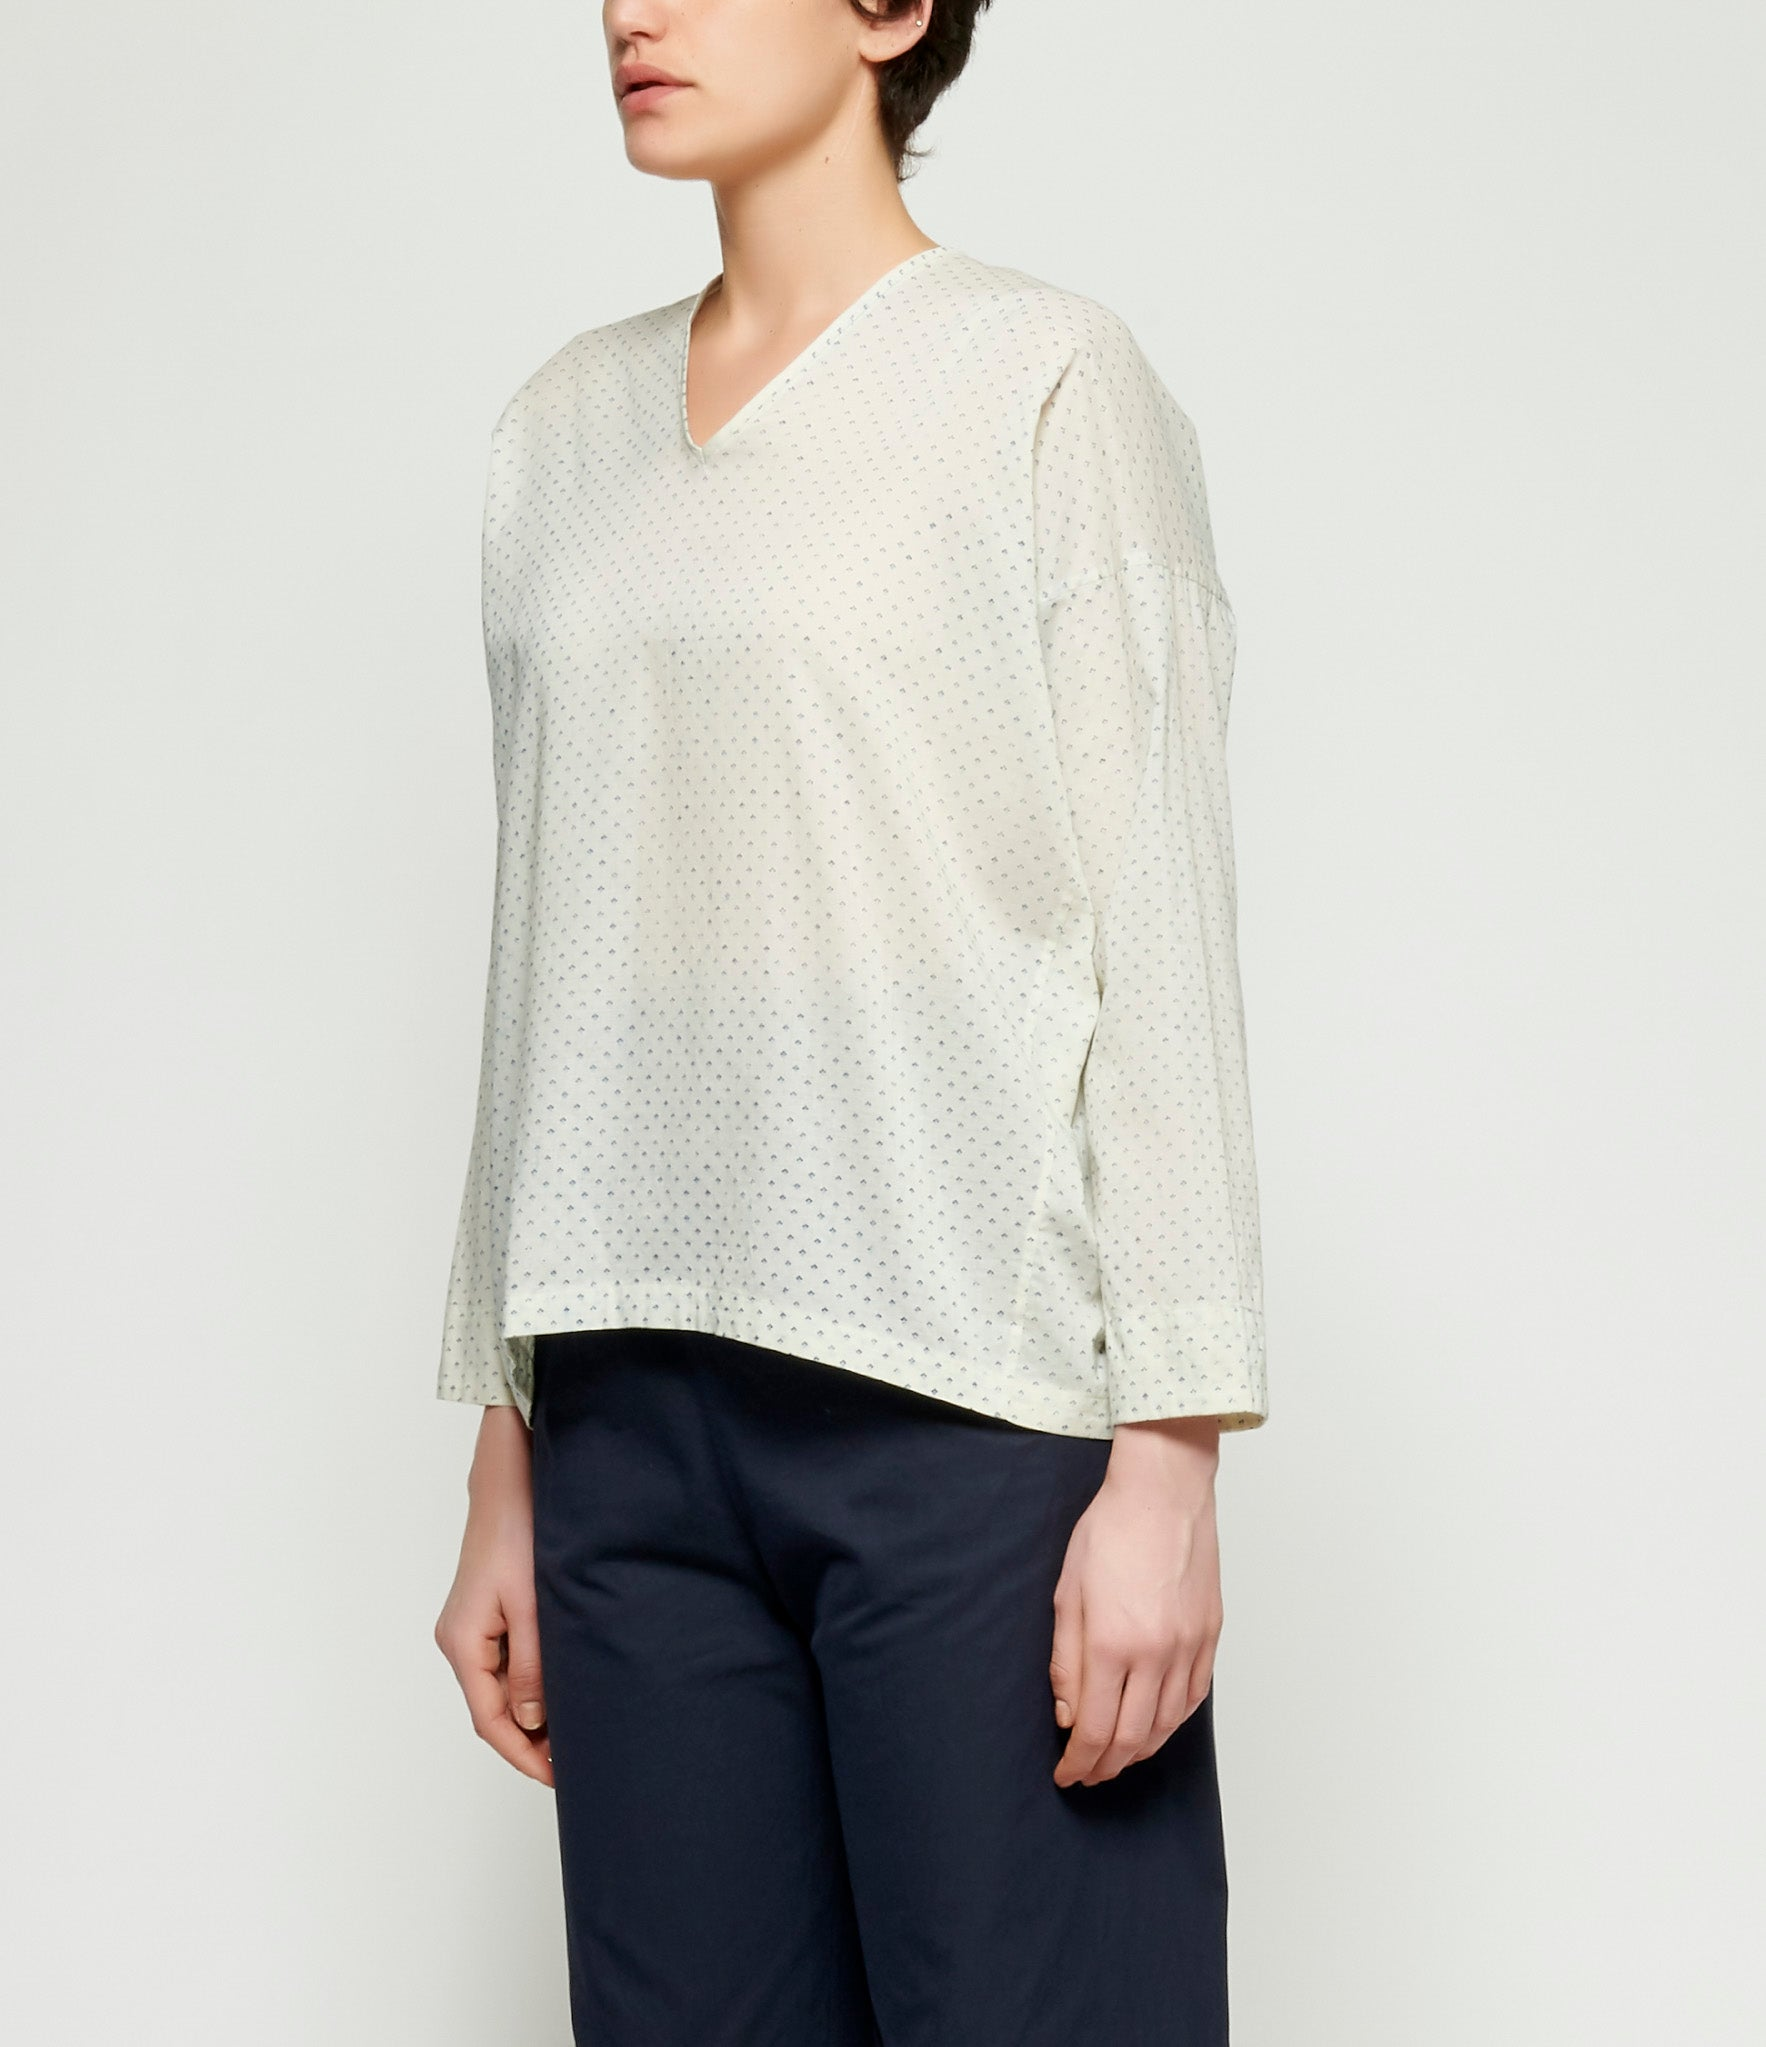 Arts & Science Two Way Flat Blouse